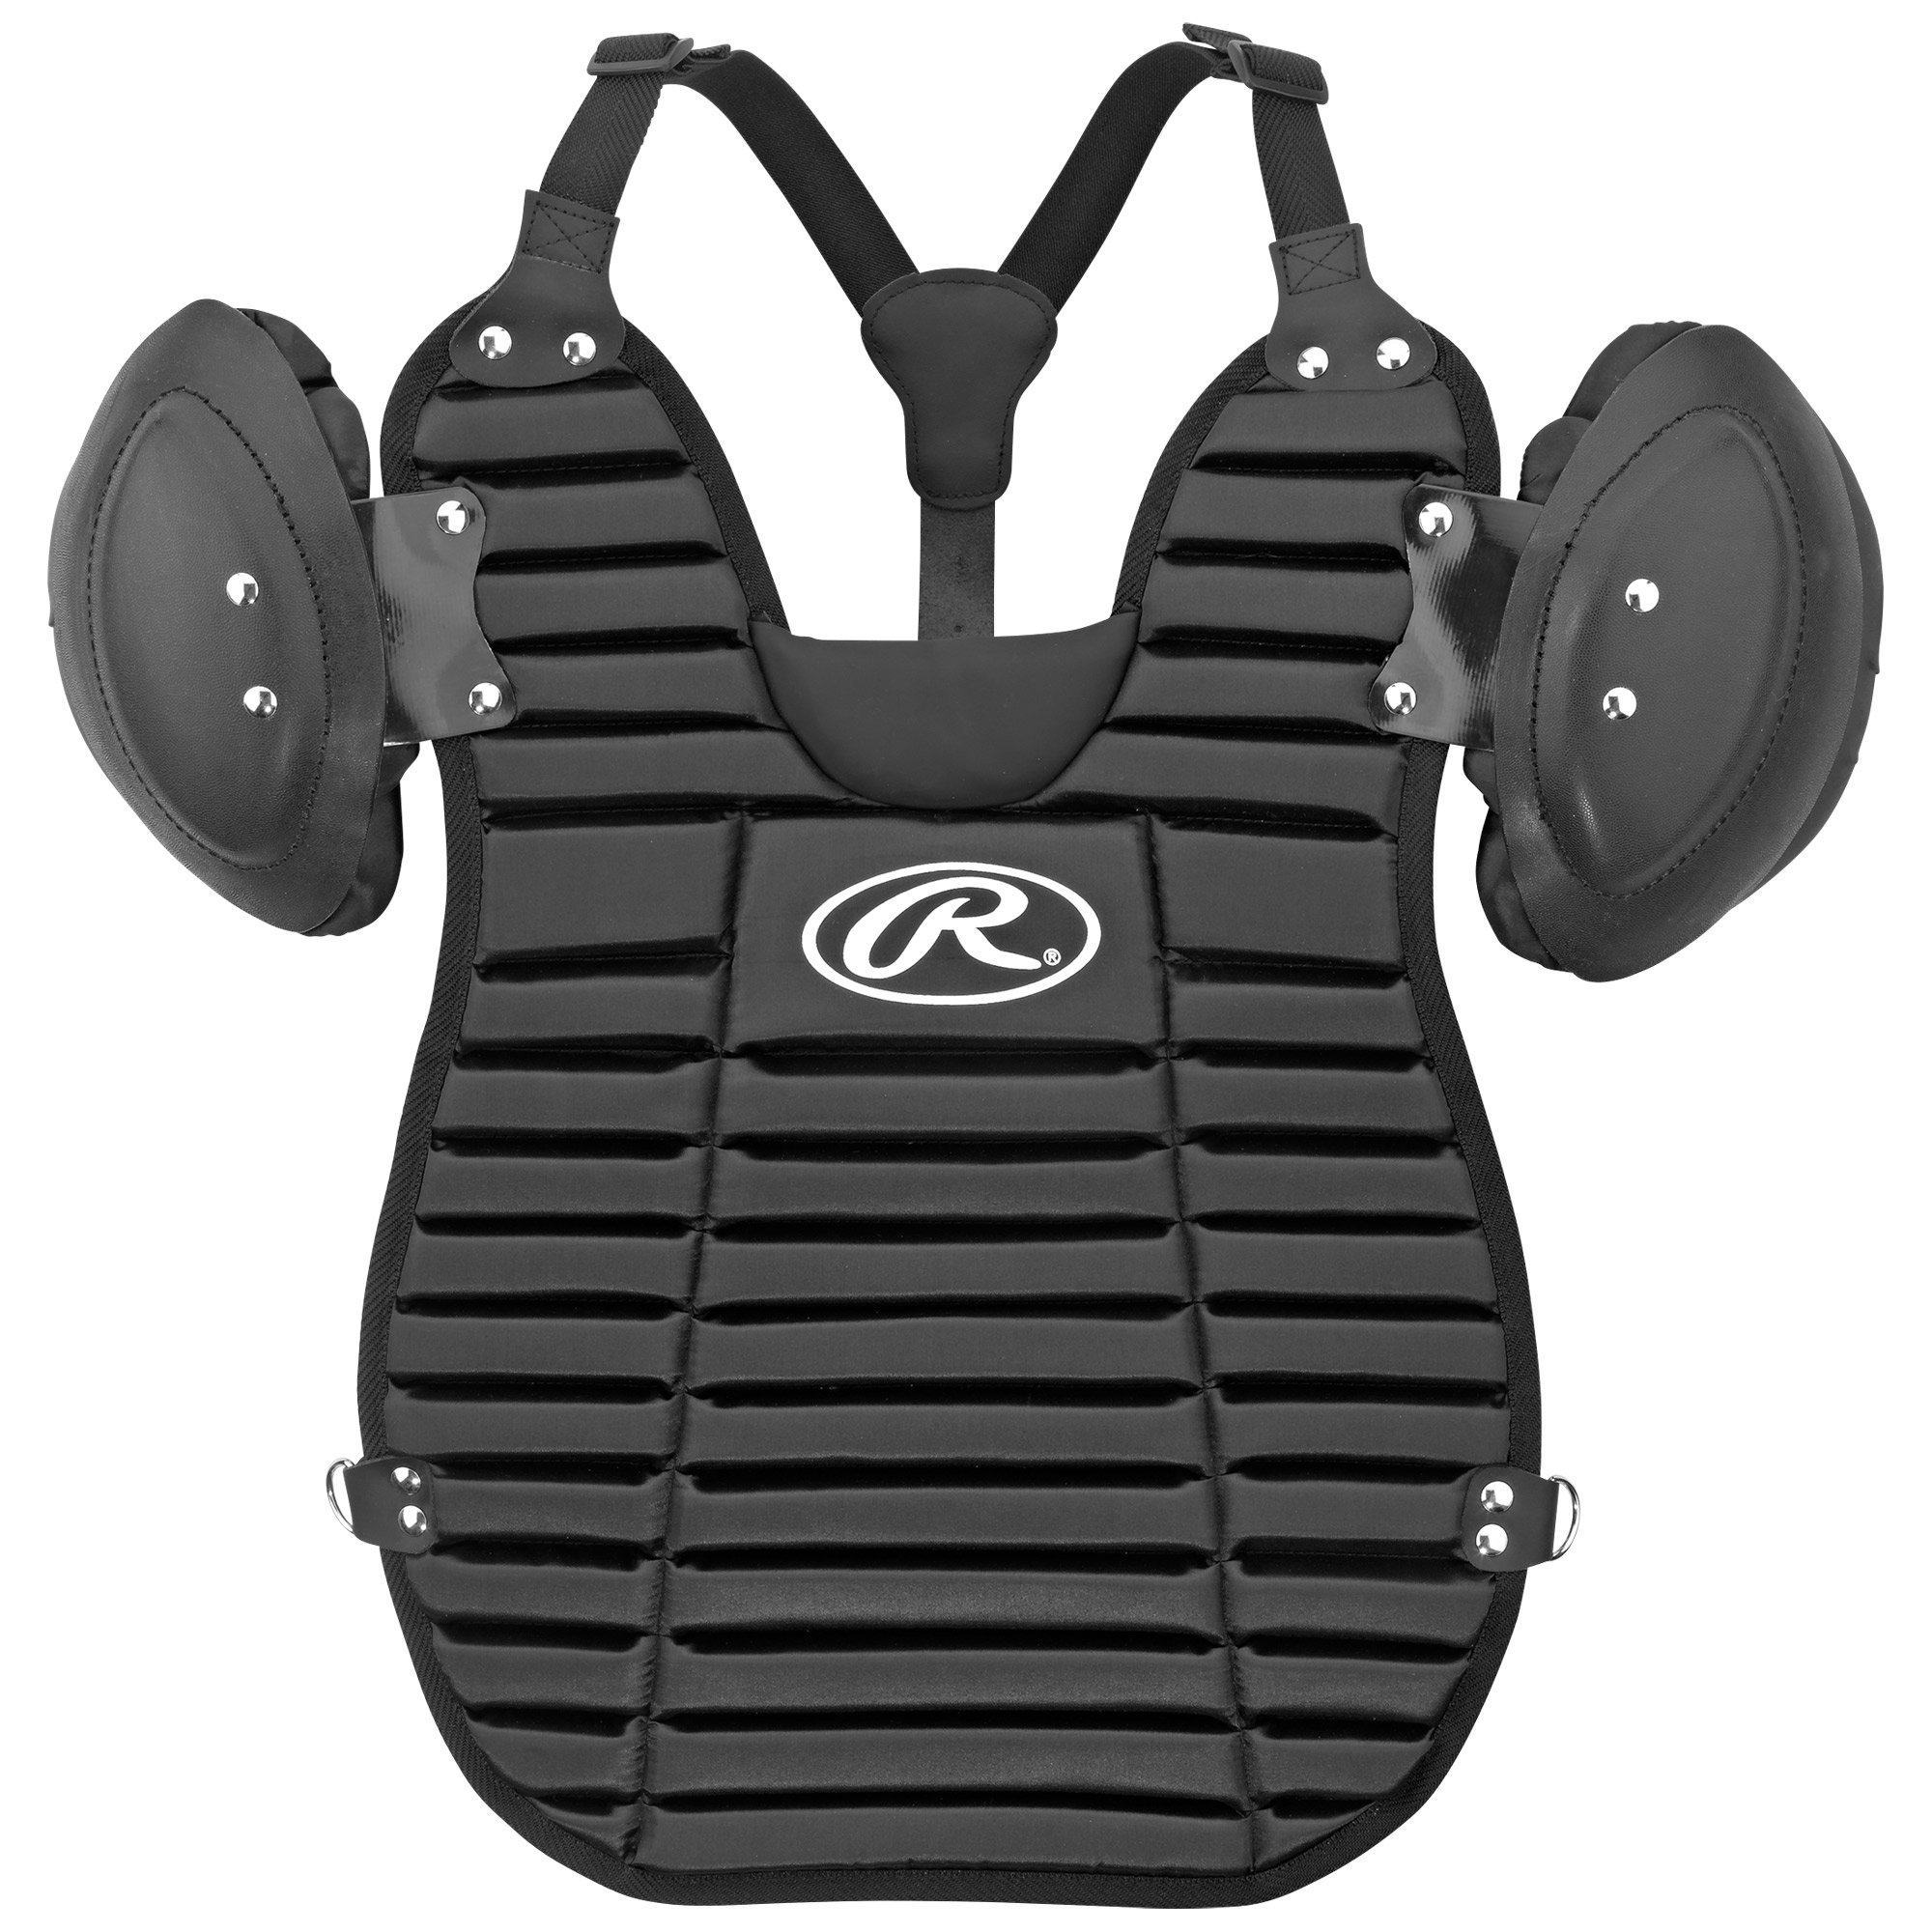 Rawlings UGPC Baseball/Softball Umpire Chest Protector by Rawlings